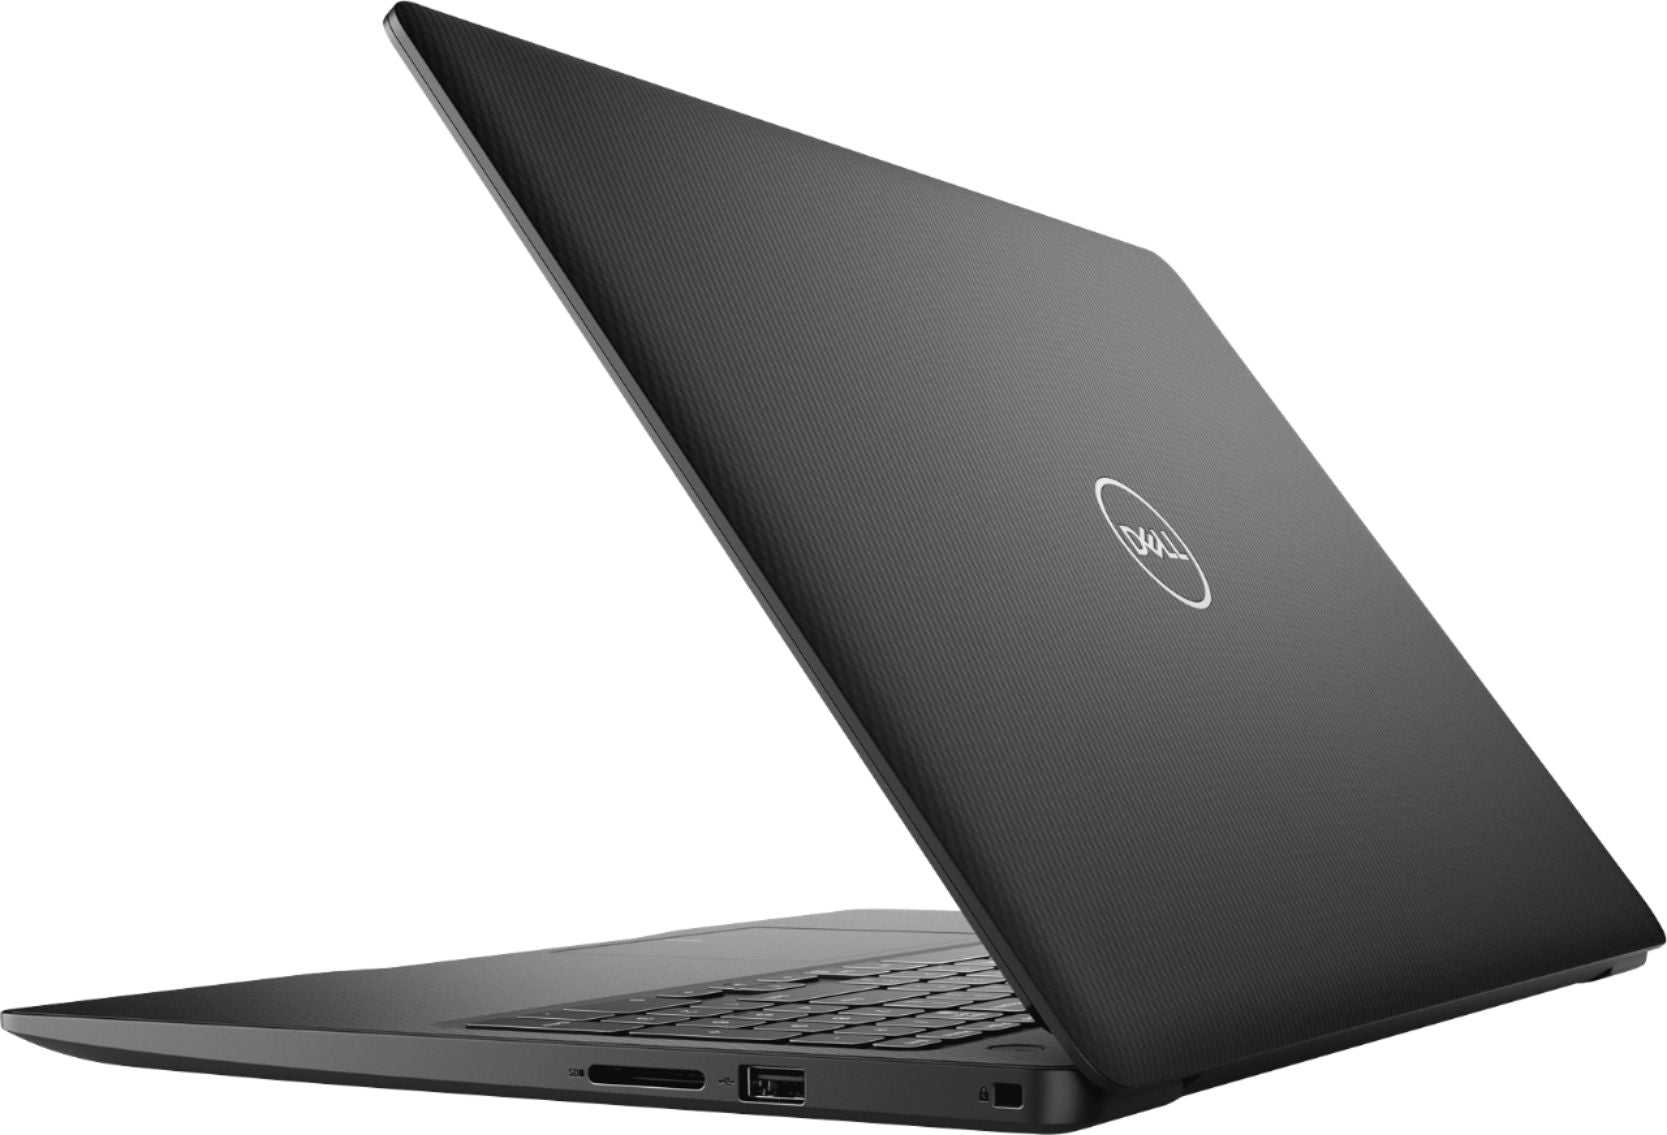 "Dell Inspiron 15 i3593 Touchscreen Laptop - 15.6"" HD Intel Core i7-1065G7, 12GB RAM, 512GB SSD, Windows 10, i3593-7644BLK - Black"